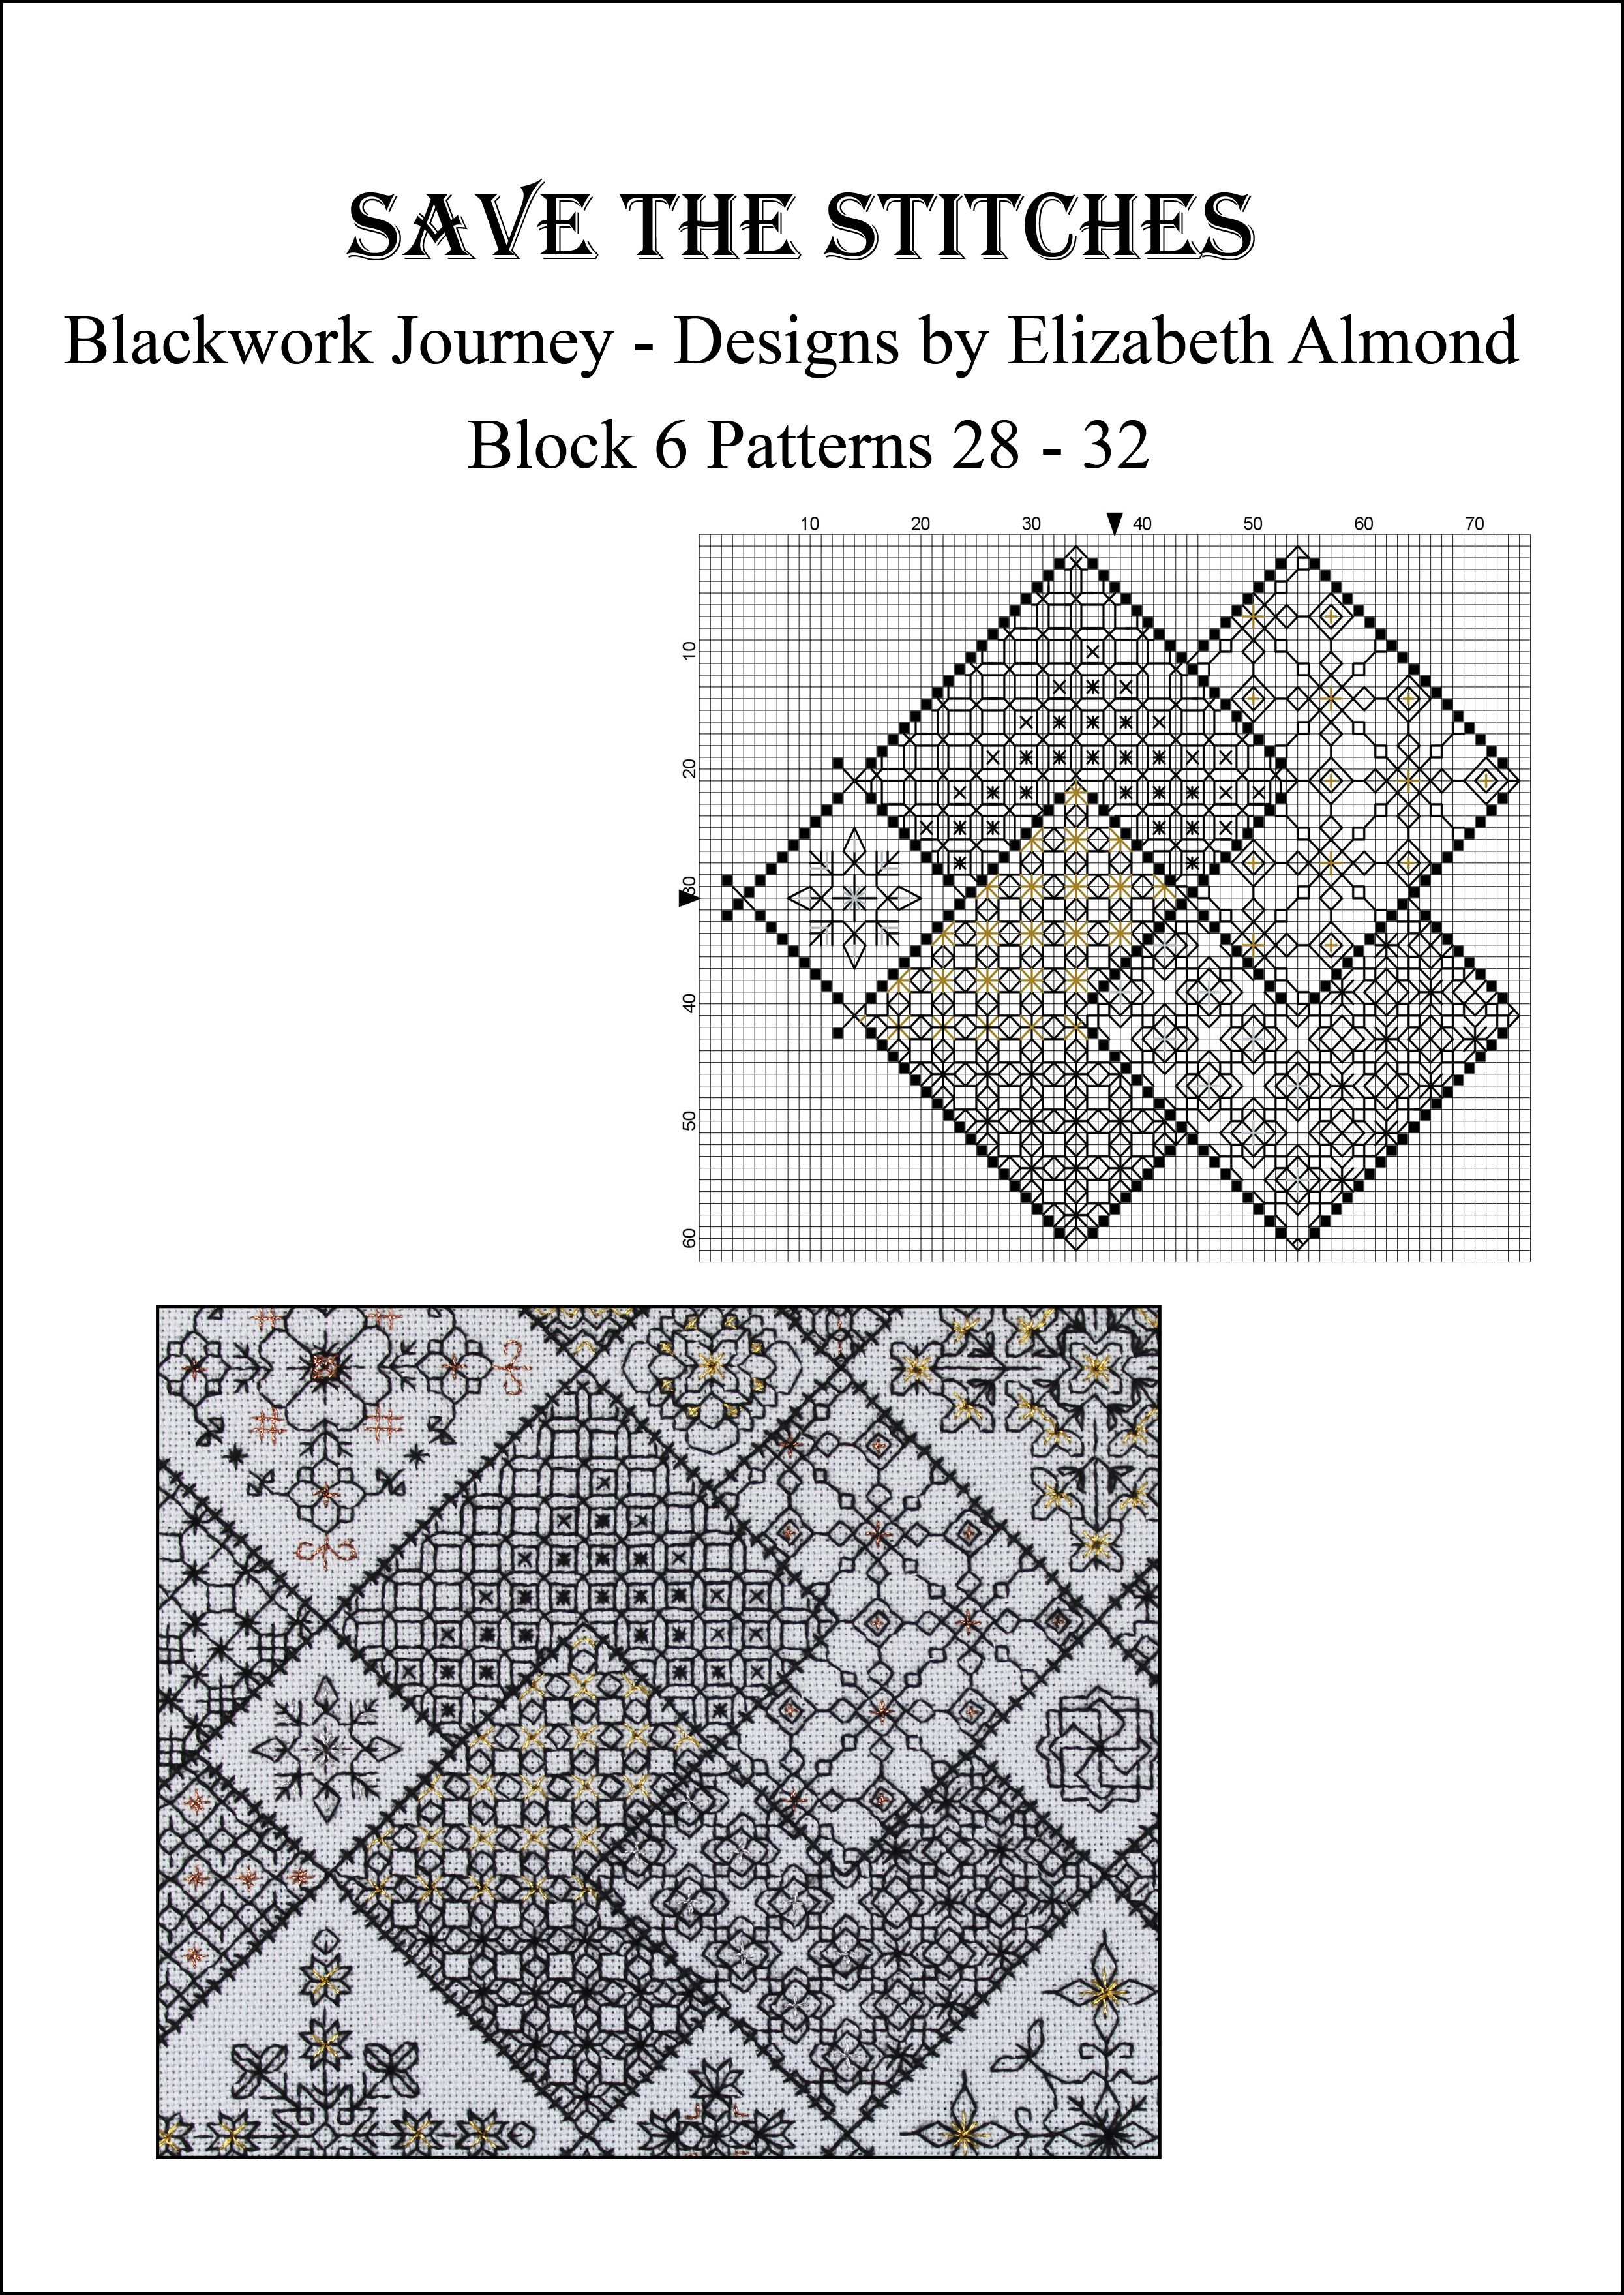 Save the stitches block 6 free pdf download available from www save the stitches block 6 free pdf download available from blackworkjourney blackwork cross stitchblackwork embroiderycross bankloansurffo Gallery